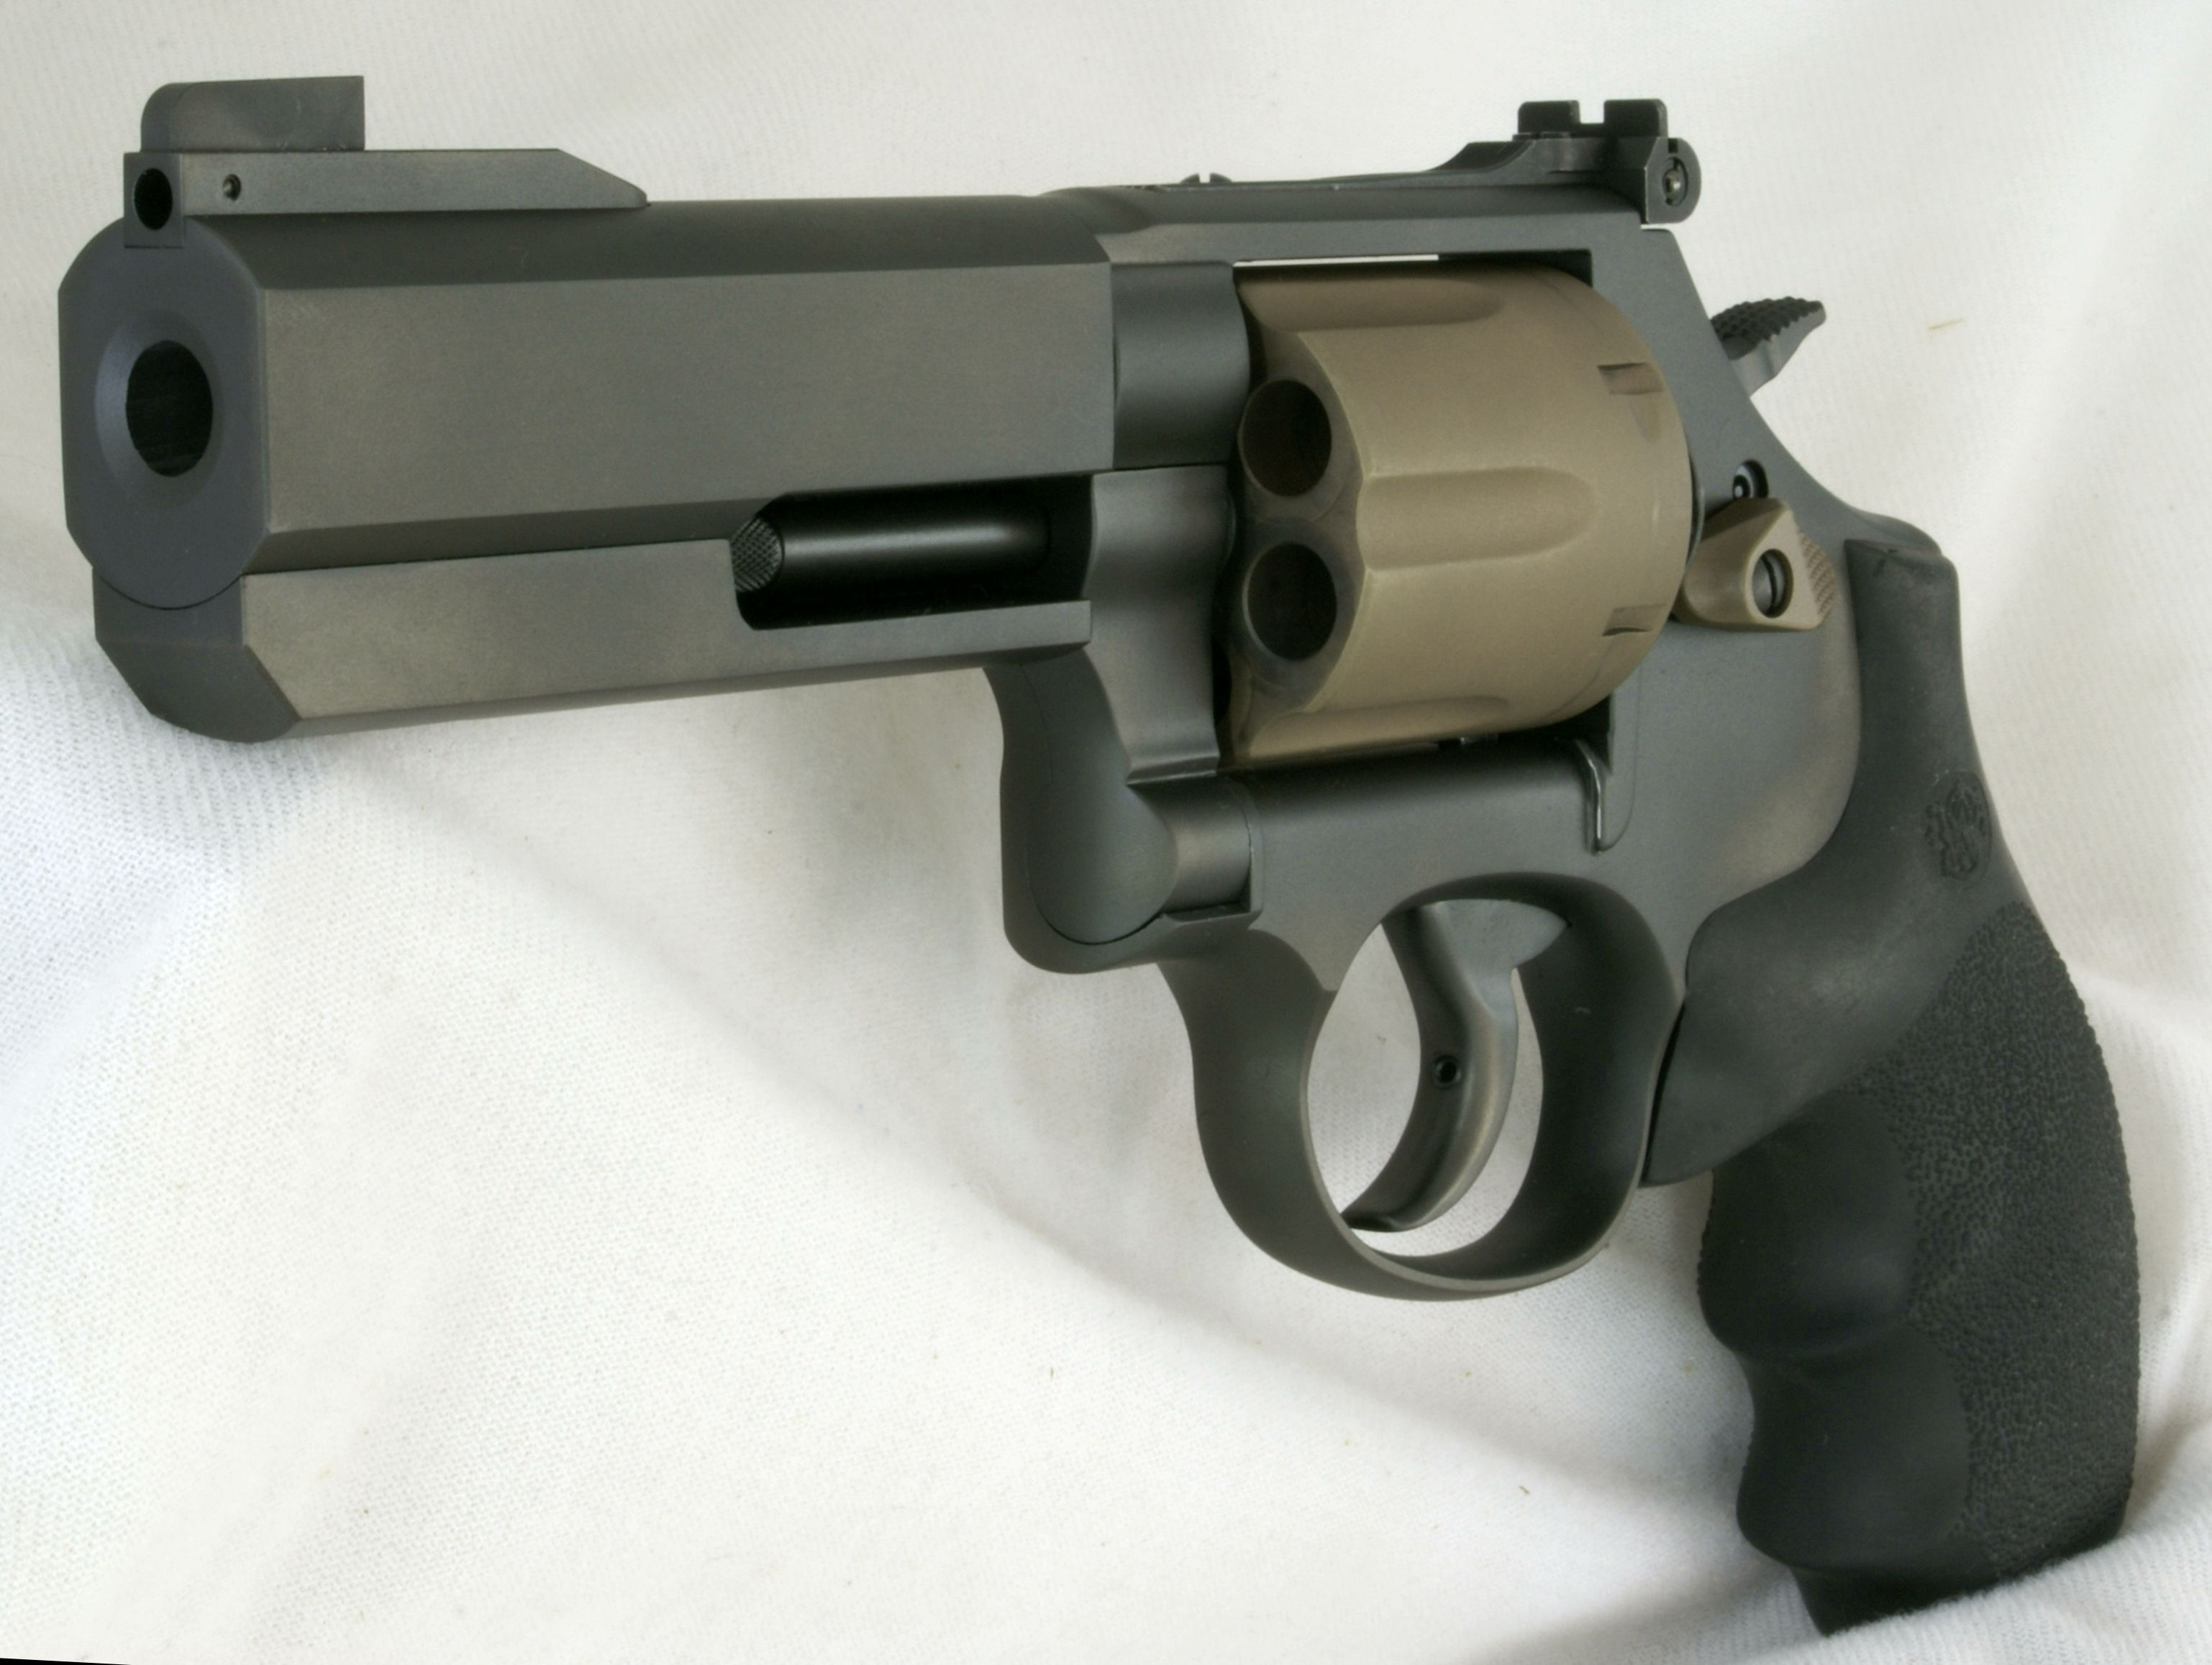 686 Best Images About Hipster Tattoos On Pinterest: Custom Smith & Wesson 686 .357 Magnum Revolver. Target